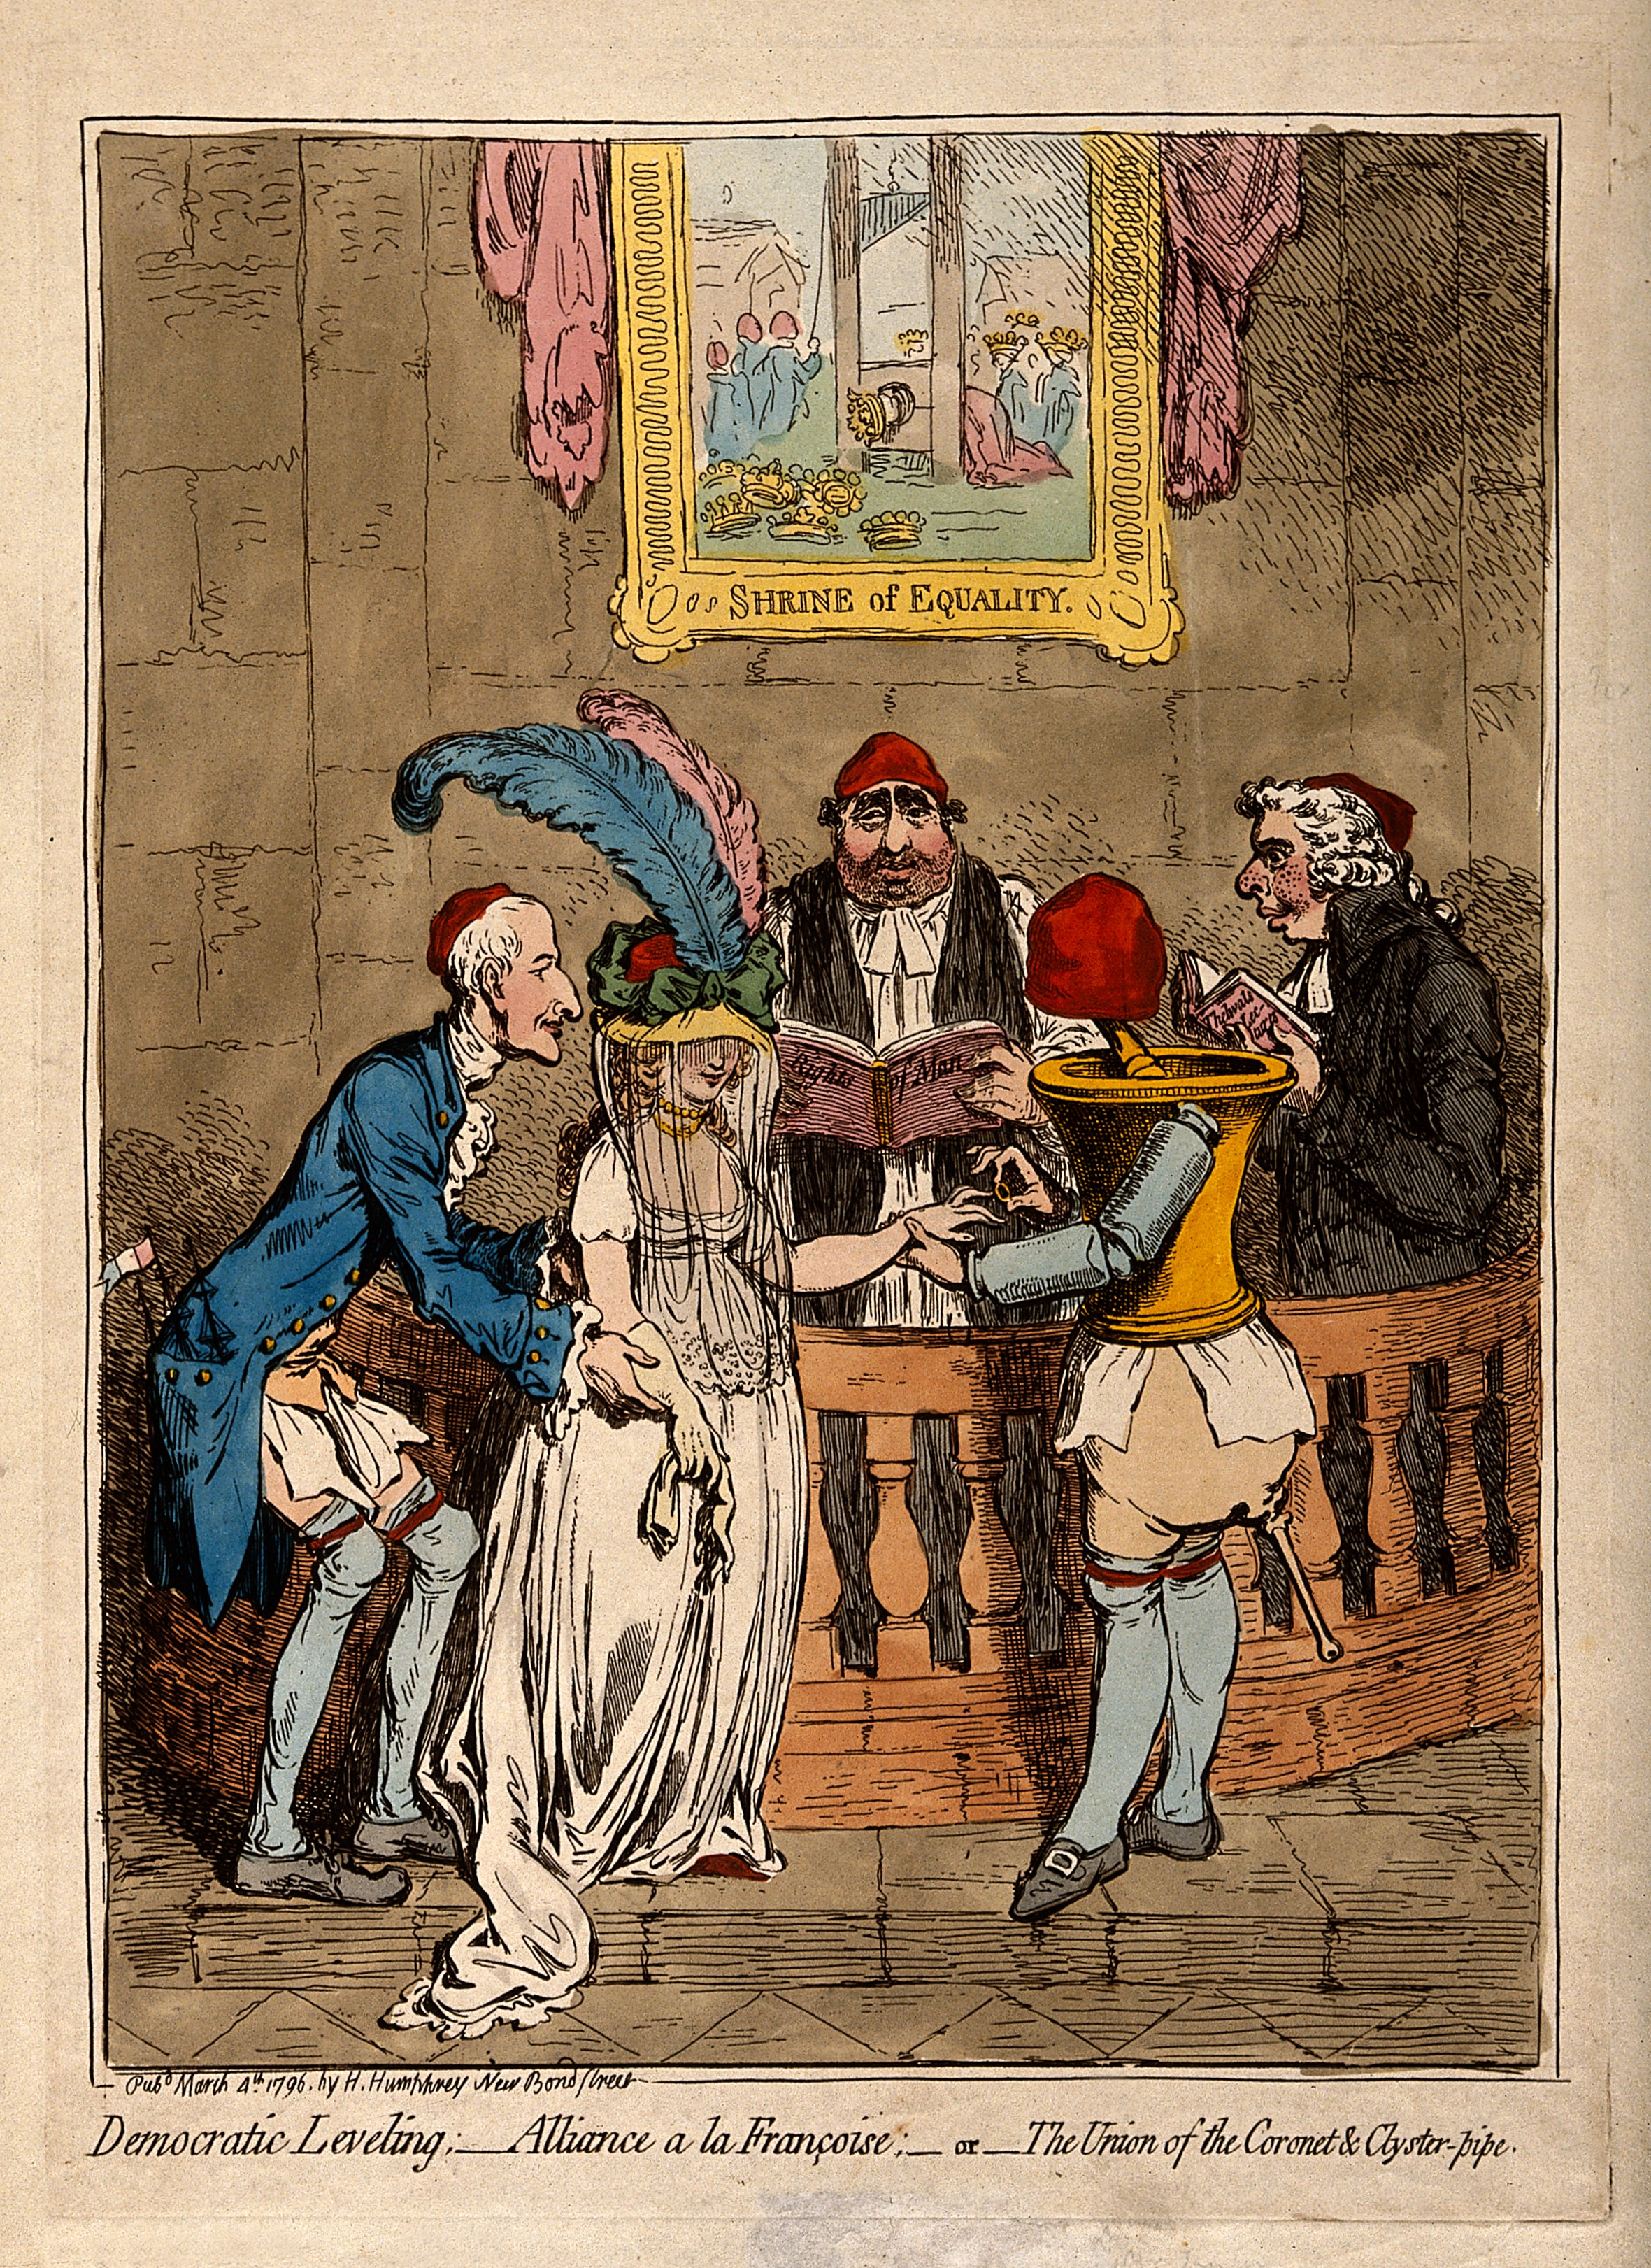 V0011301 The wedding of Lady Lucy Stanhope to Thomas Taylor, a